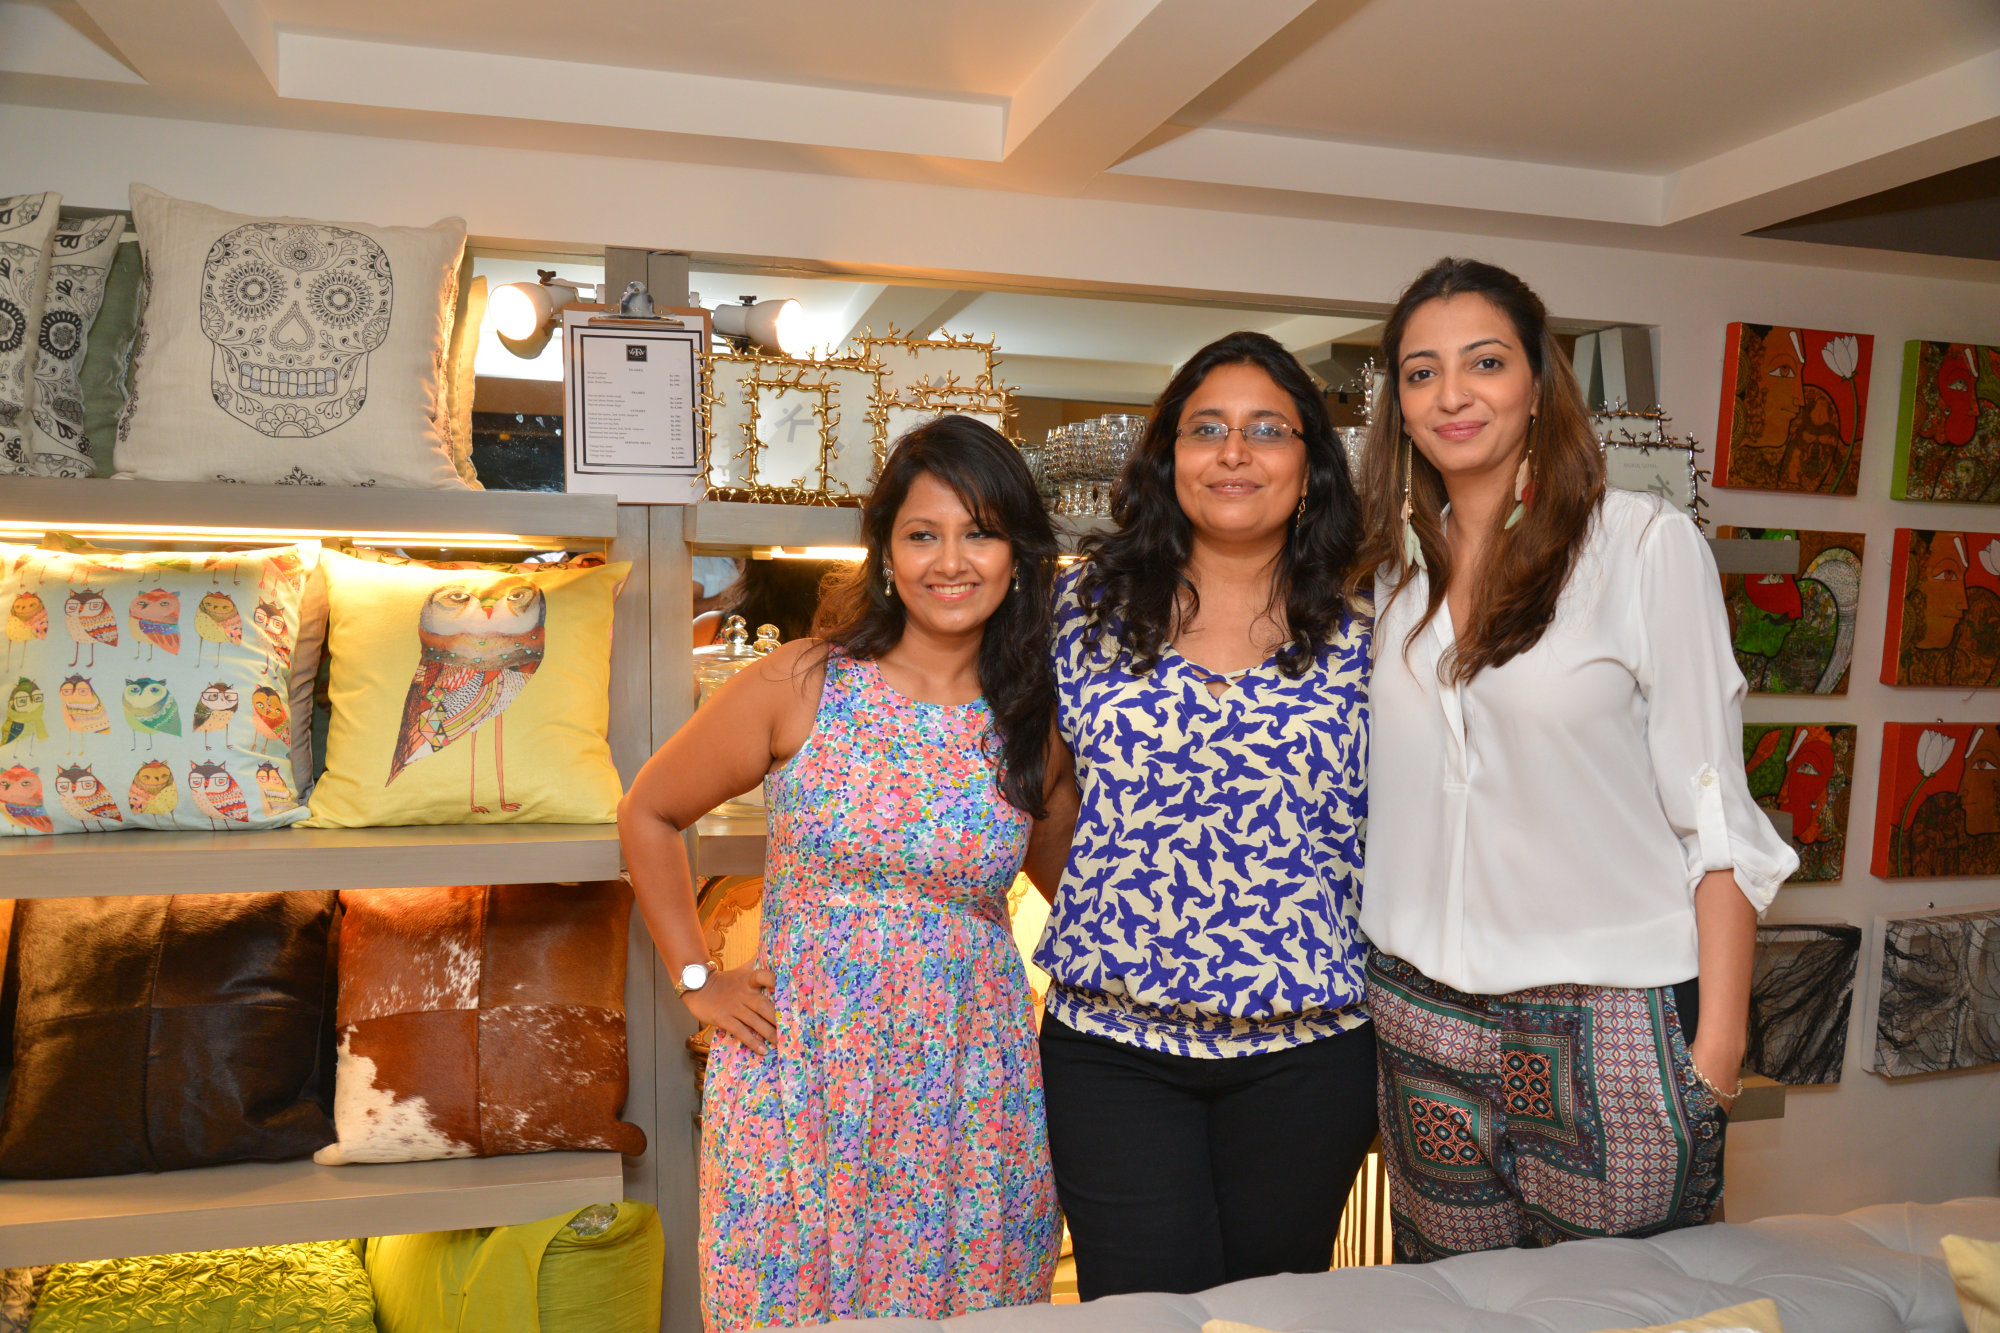 Hosts Sharanya Rao, Sanvari Alagh Nair and Anjori Alagh